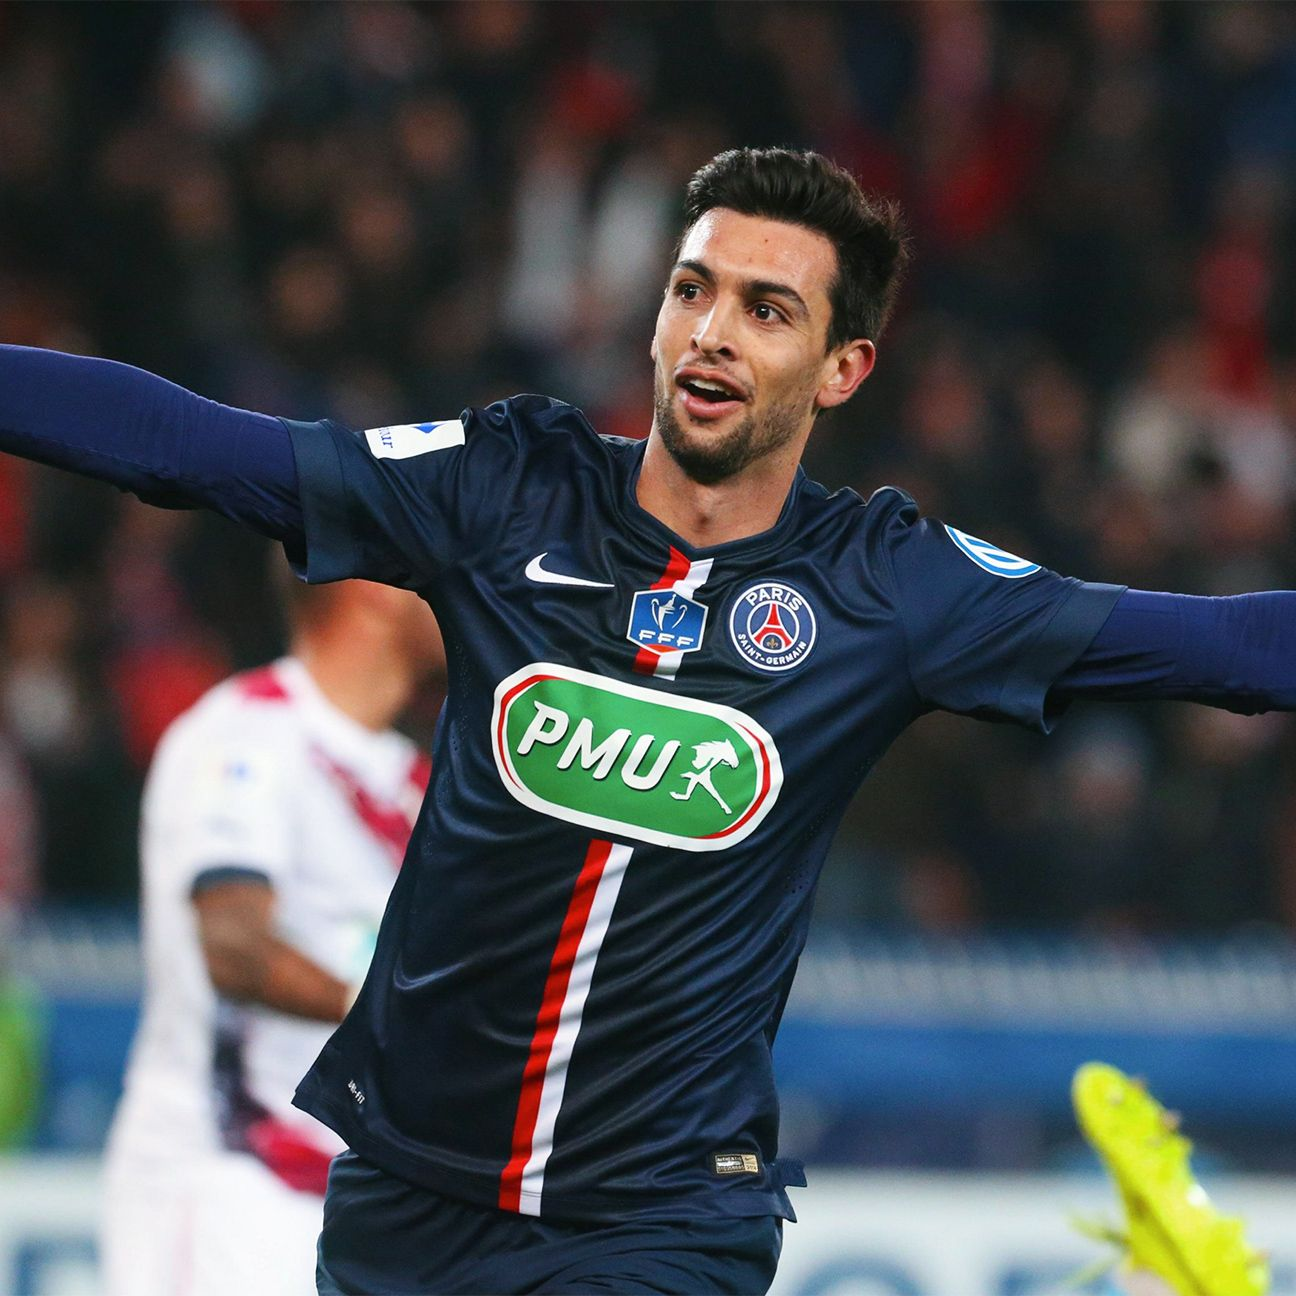 Javier Pastore's return from injury could provide a big boost for the PSG attack.